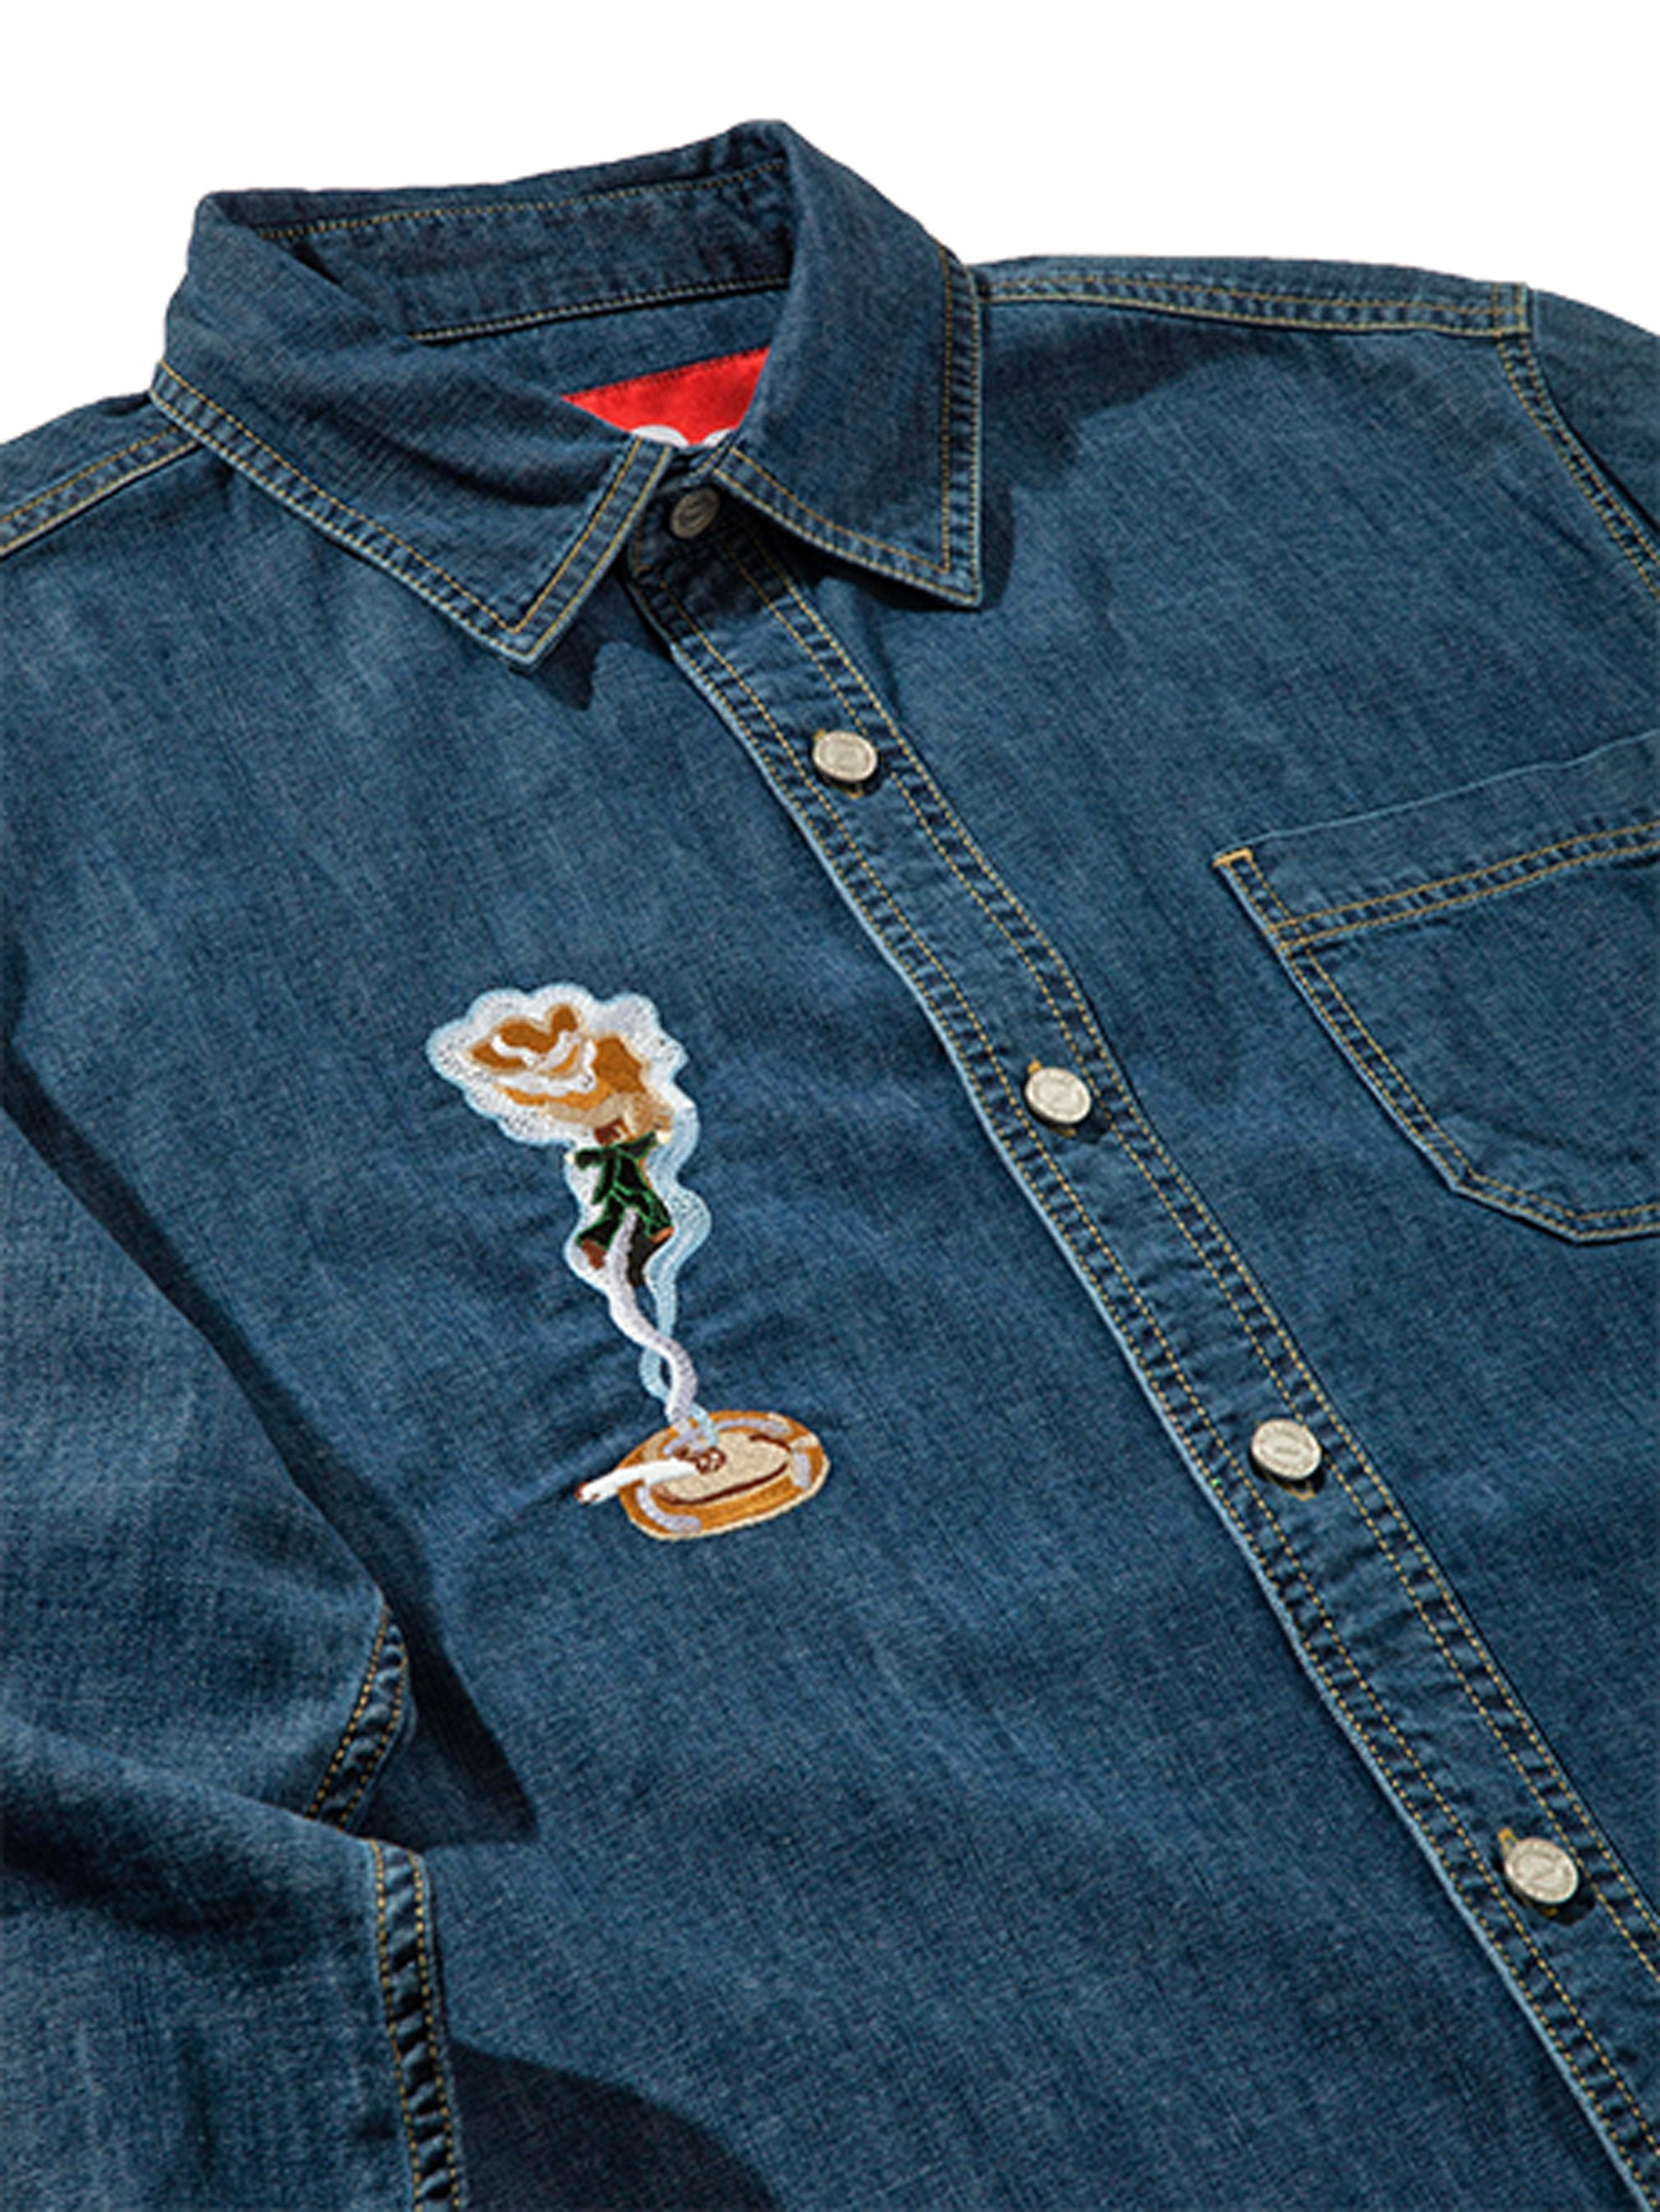 XL Smoker's Collection Jean Shirt 6